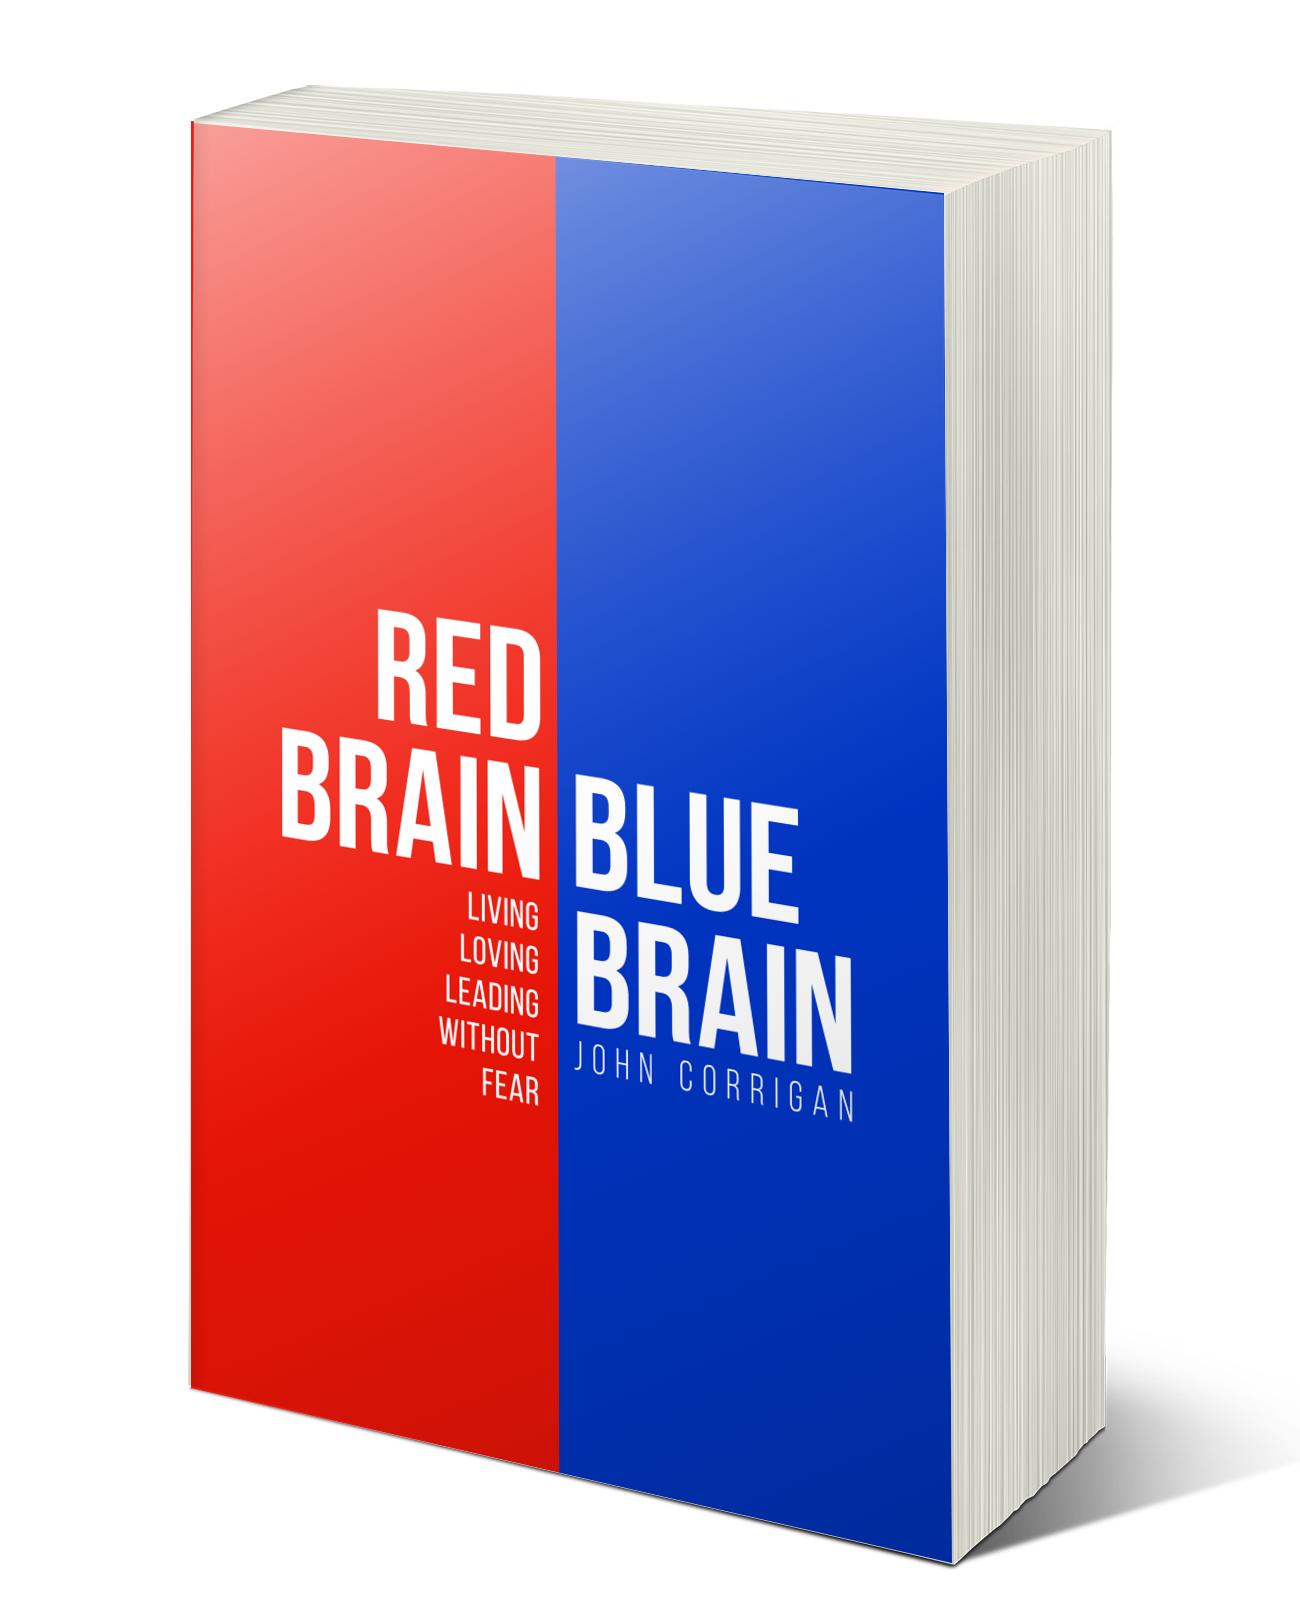 Red Brain Blue Brain Mock up.png